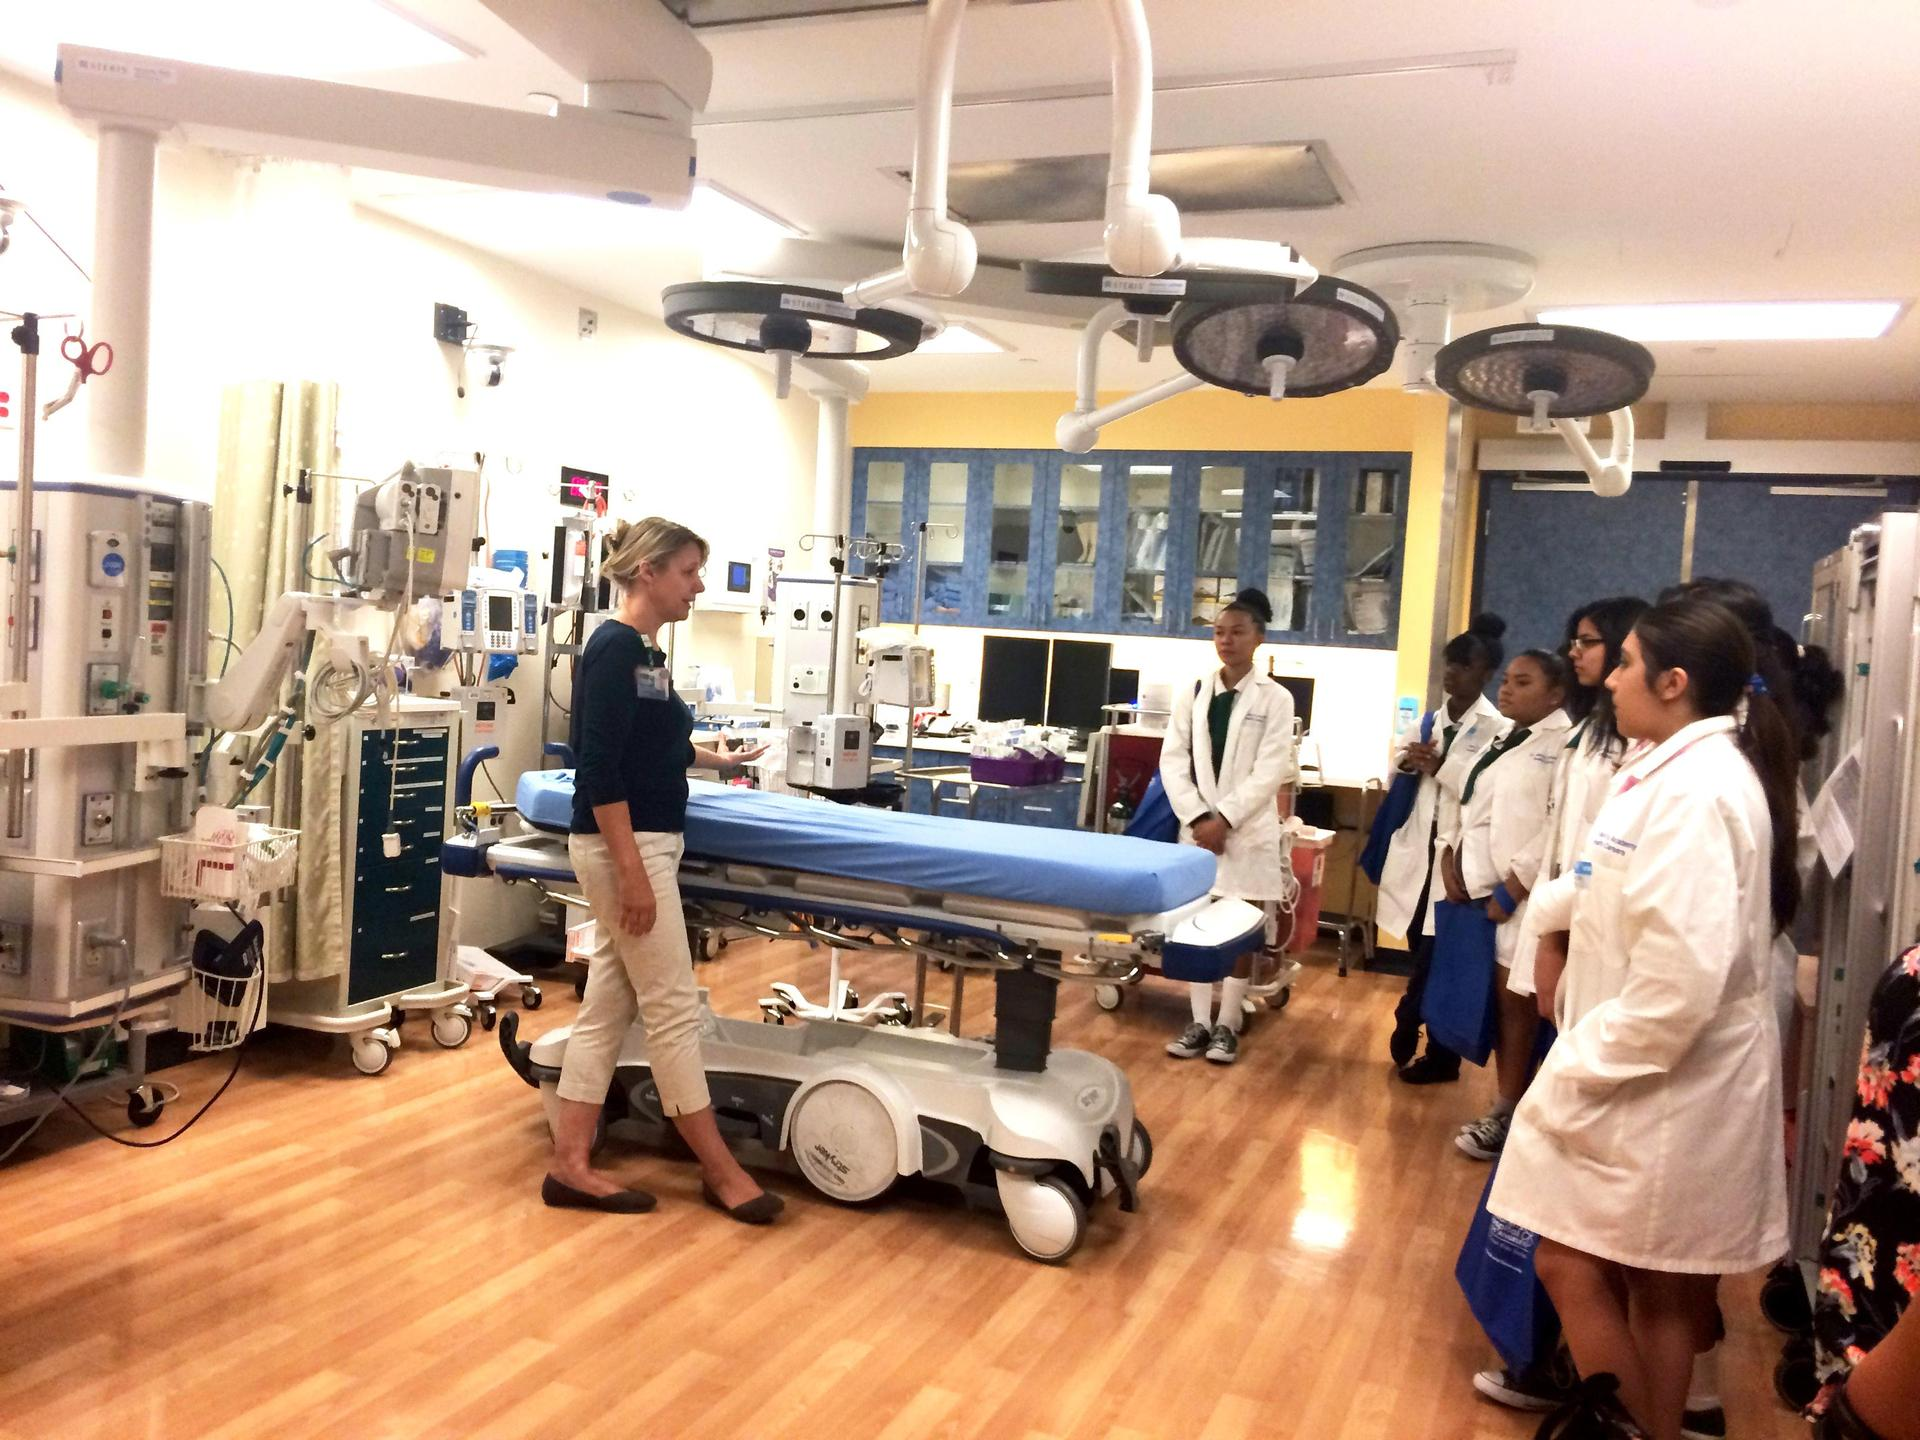 health career students in one of the specialized hospital rooms